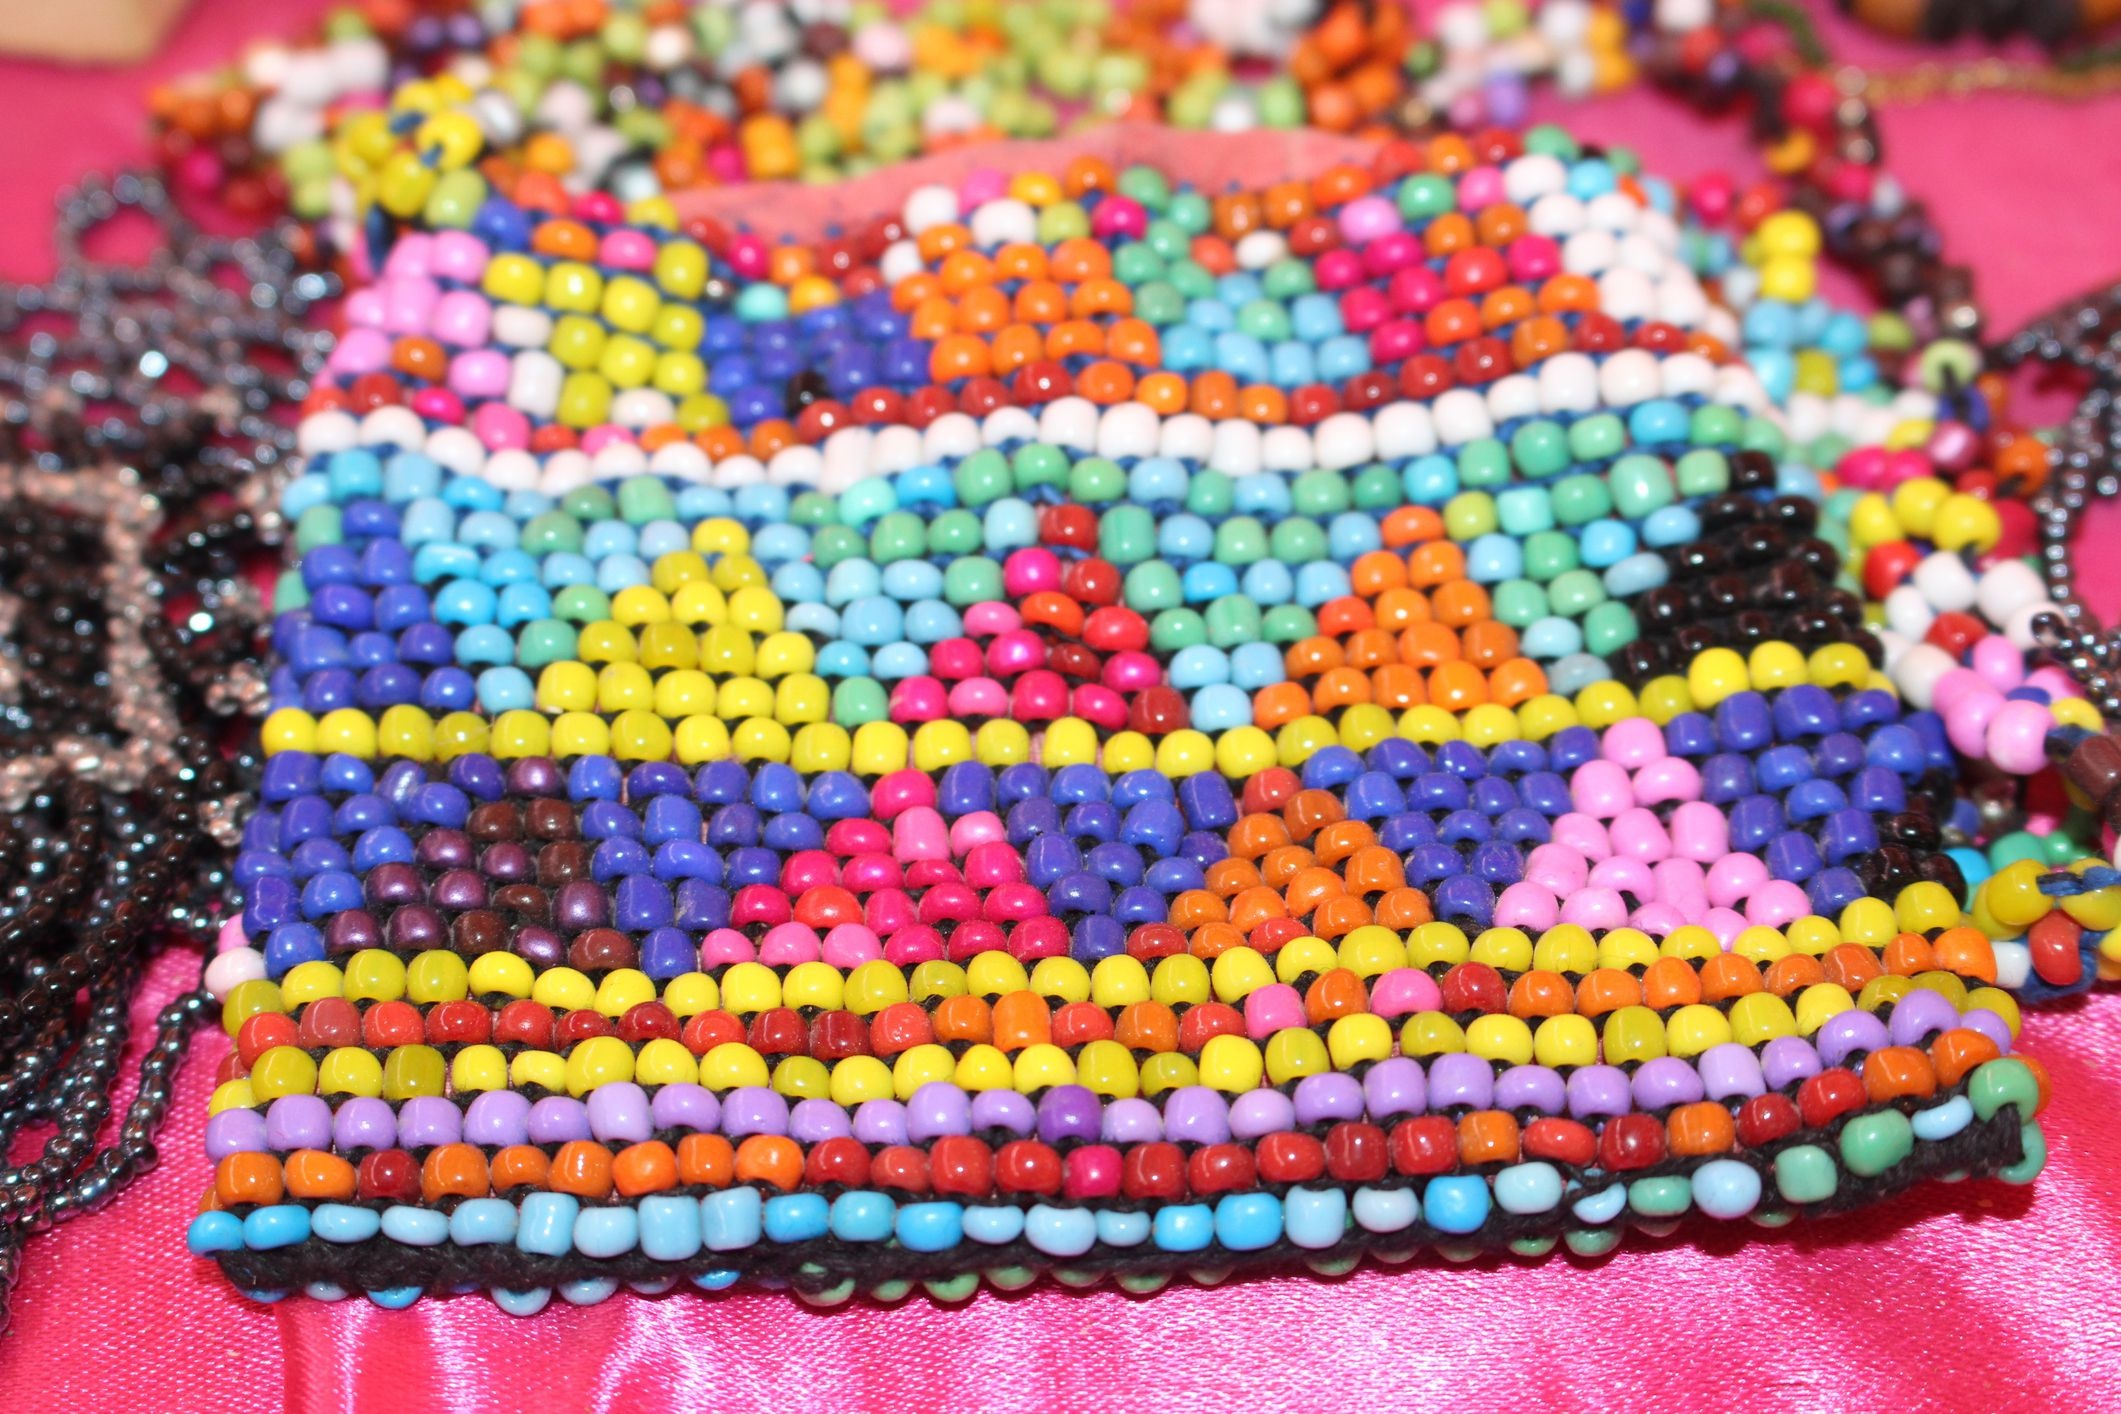 11 Beadwork Patterns To Download For Free - Free Printable Bead Loom Patterns